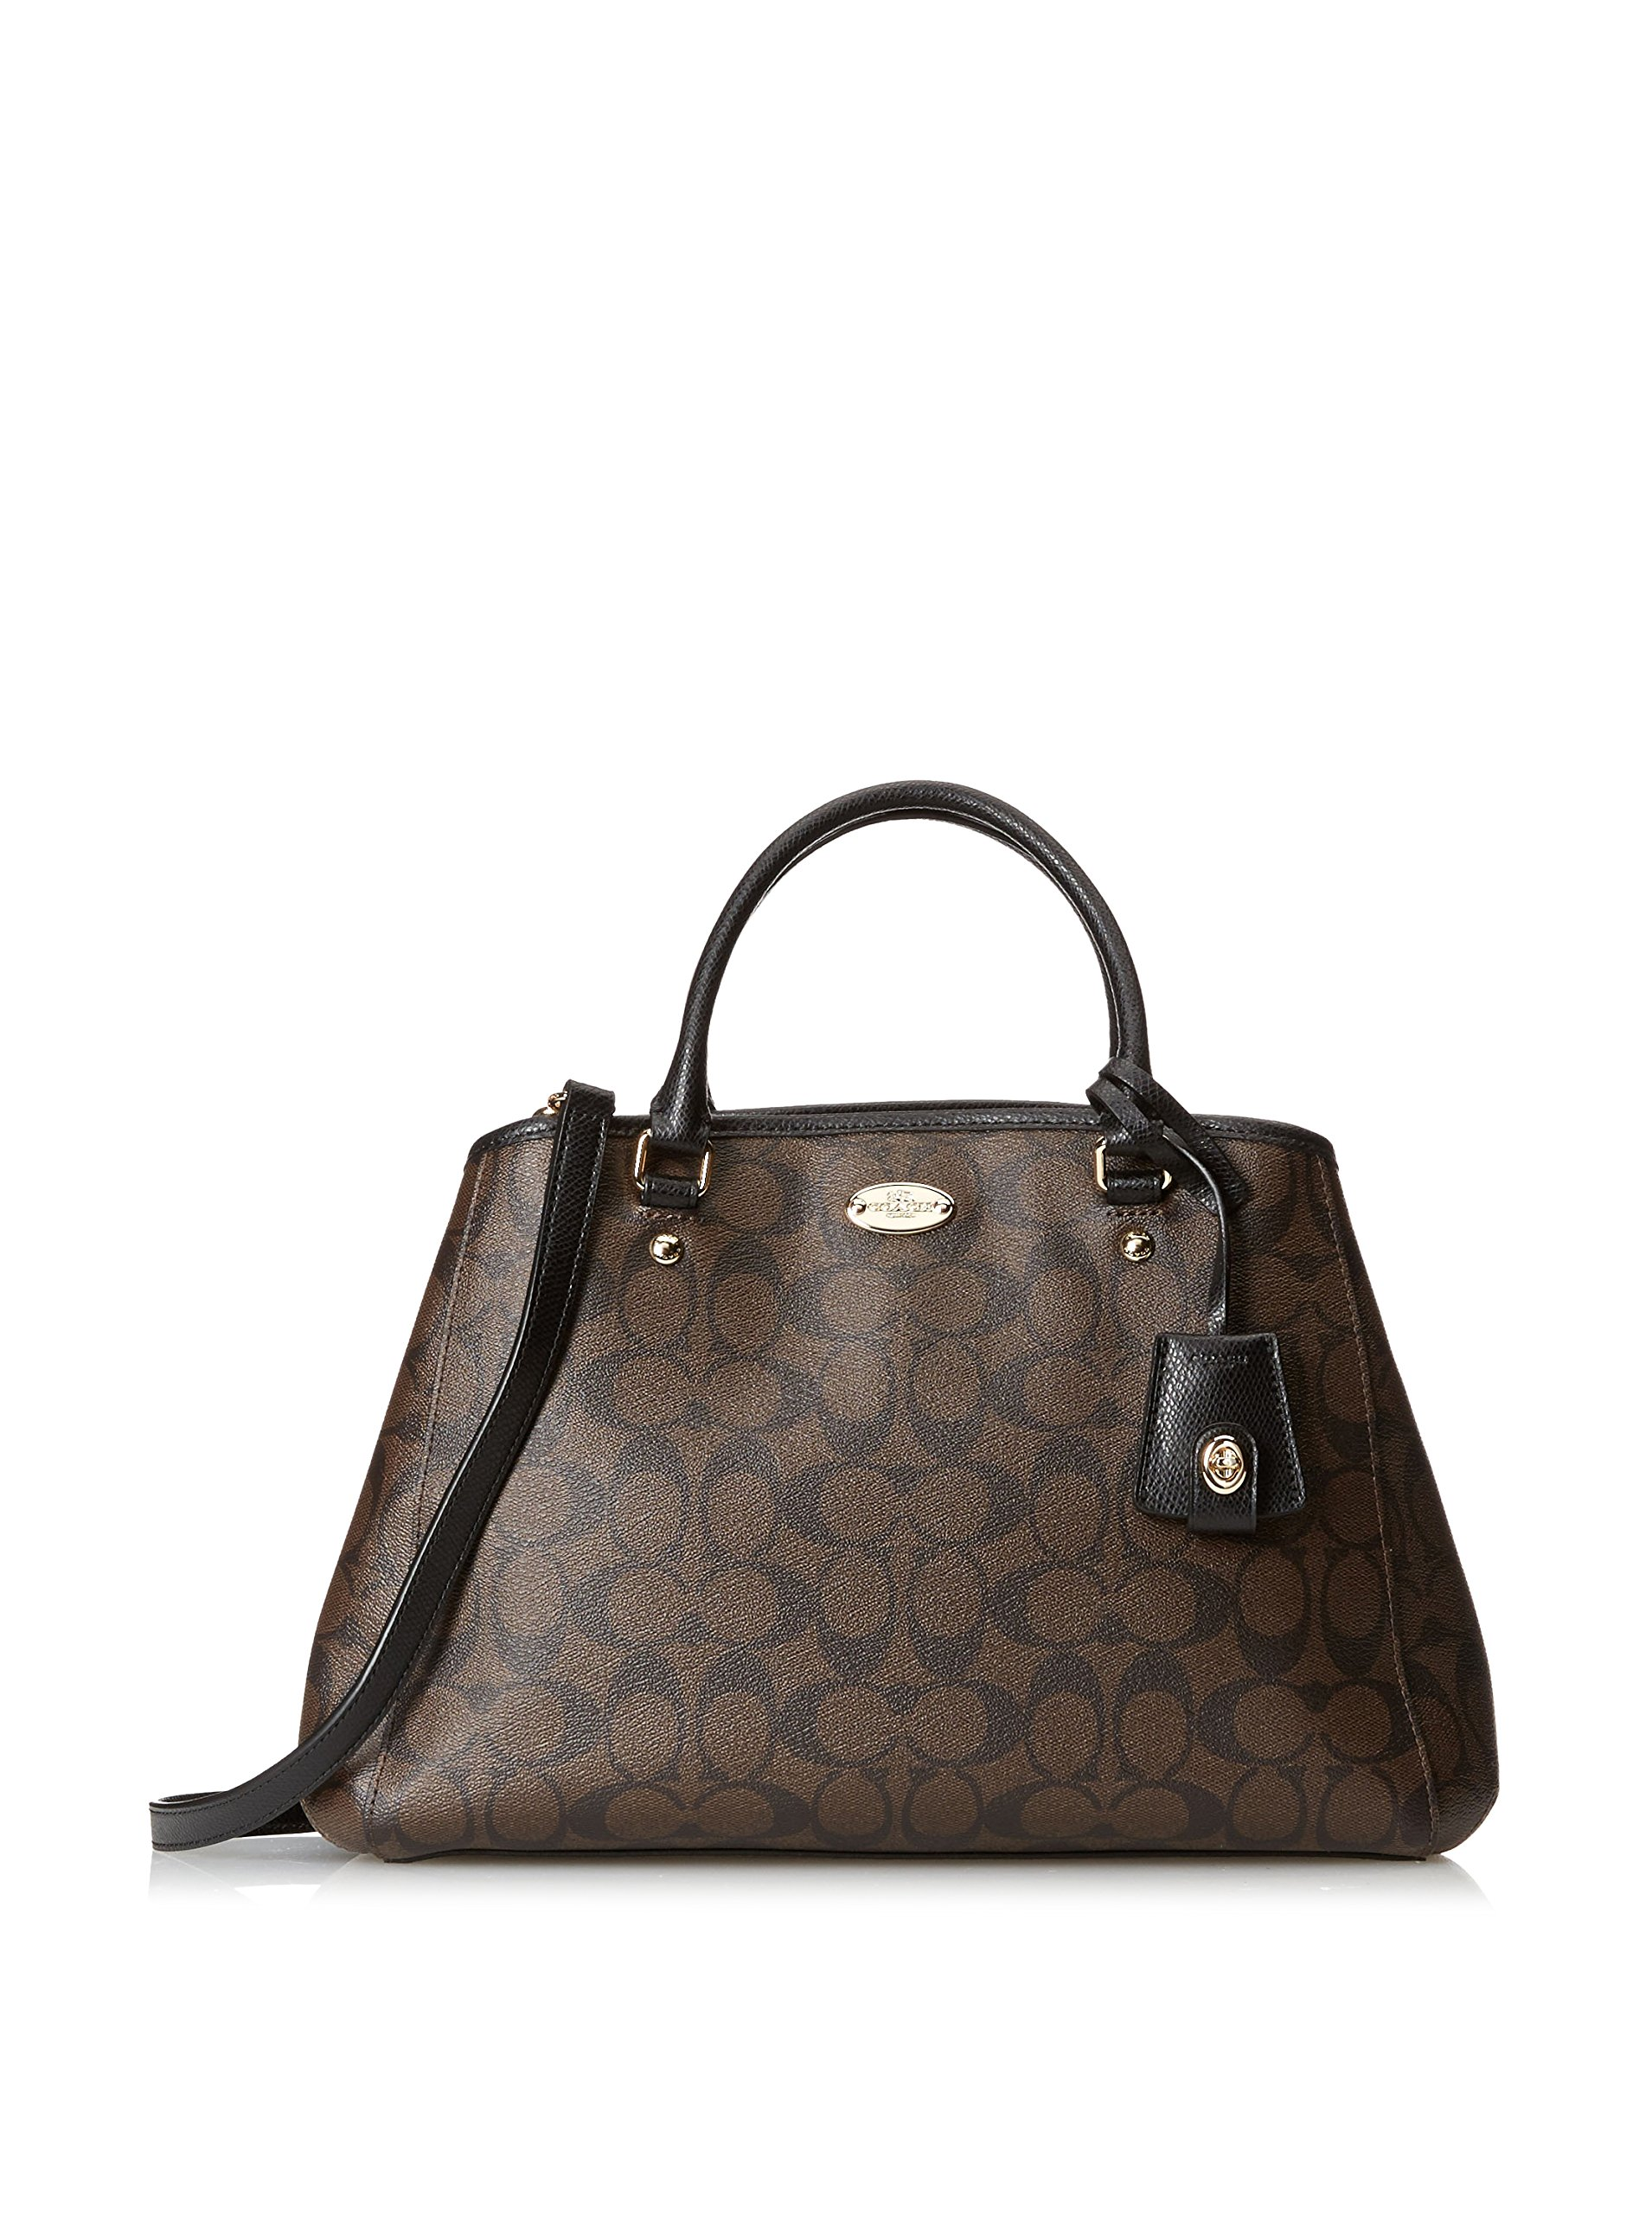 Coach Signature Small Margo Carryall - Brown/Black